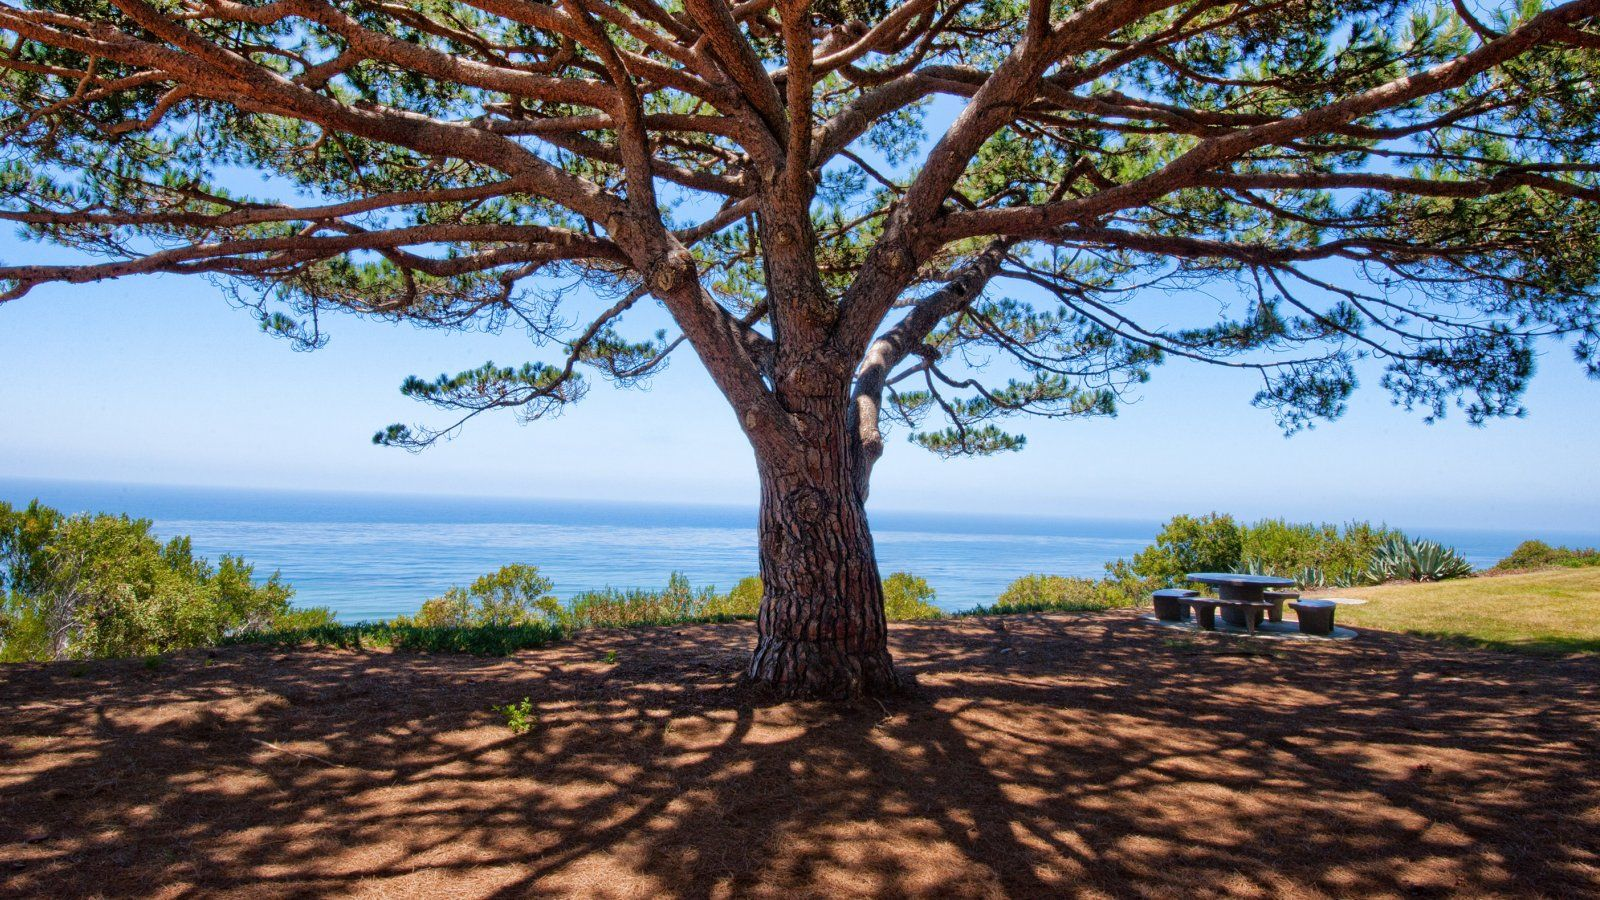 A tree overlooks the ocean on the PLNU campus.